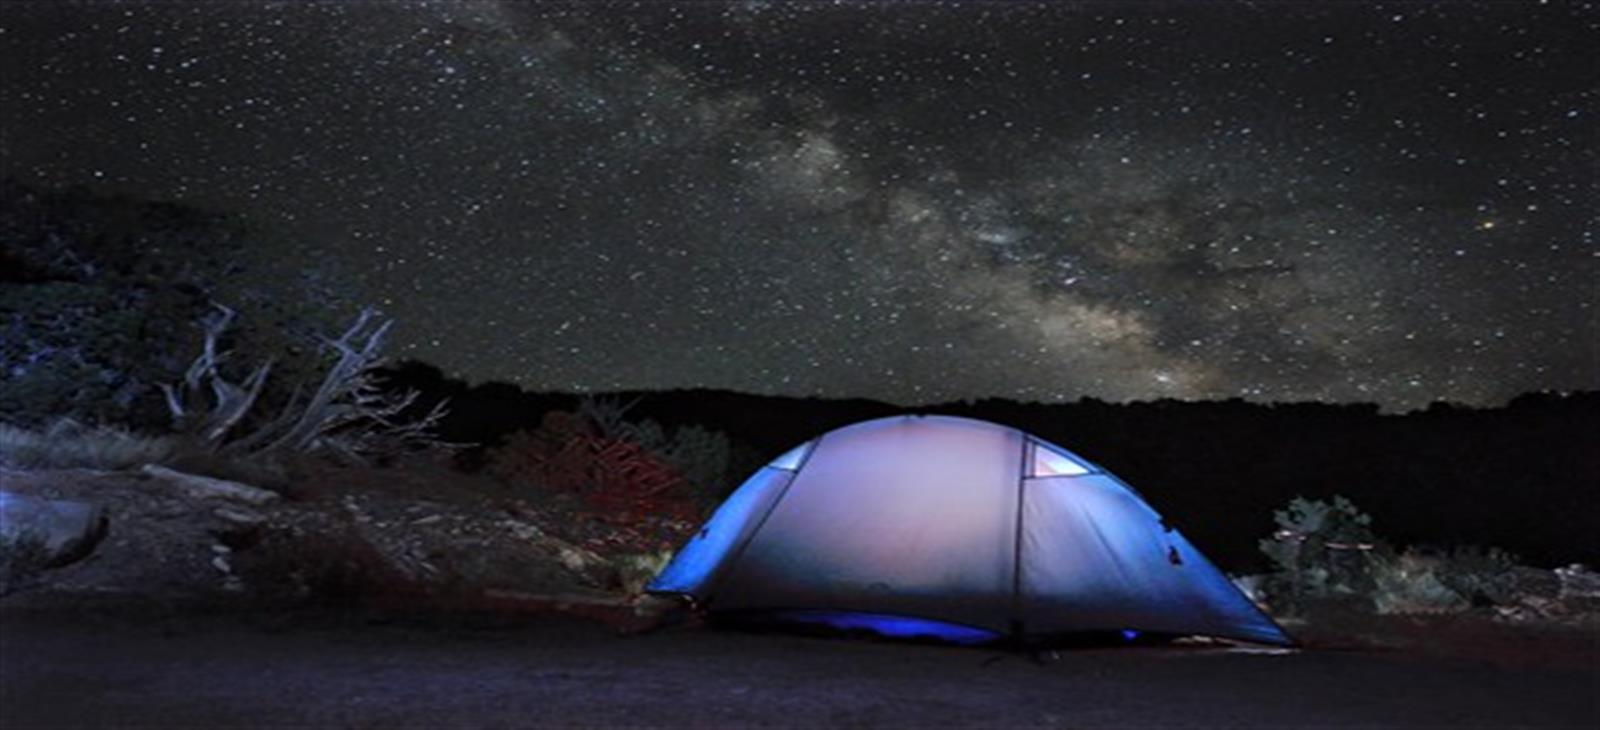 star gazer night sharm el sheikh